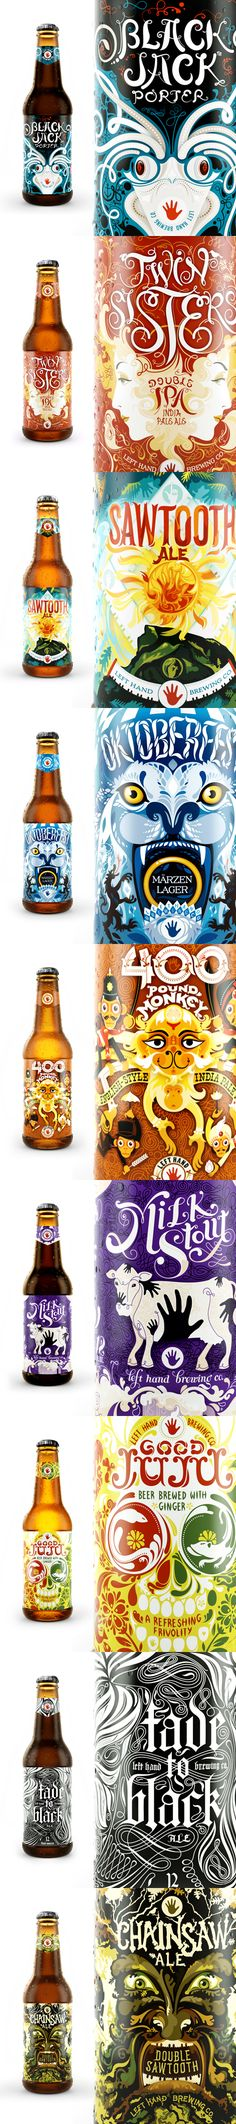 Left Hand Brewing Co. awesome beer packaging design and illustration PD